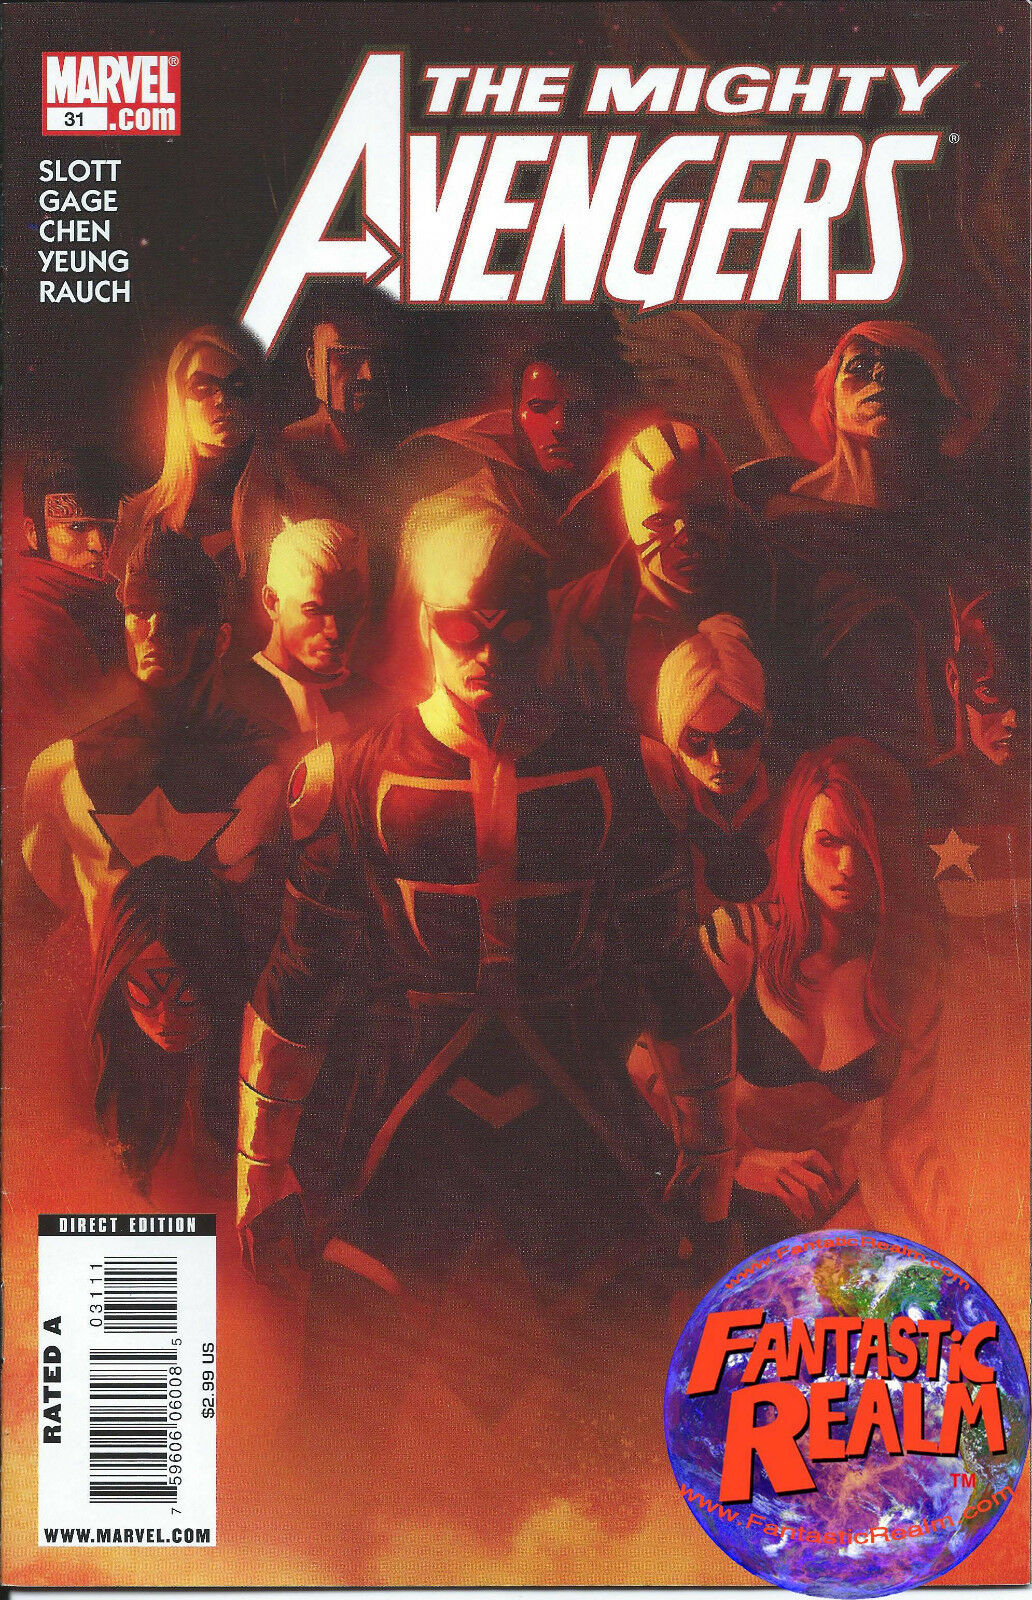 THE MIGHTY AVENGERS #31 MARVEL COMICS